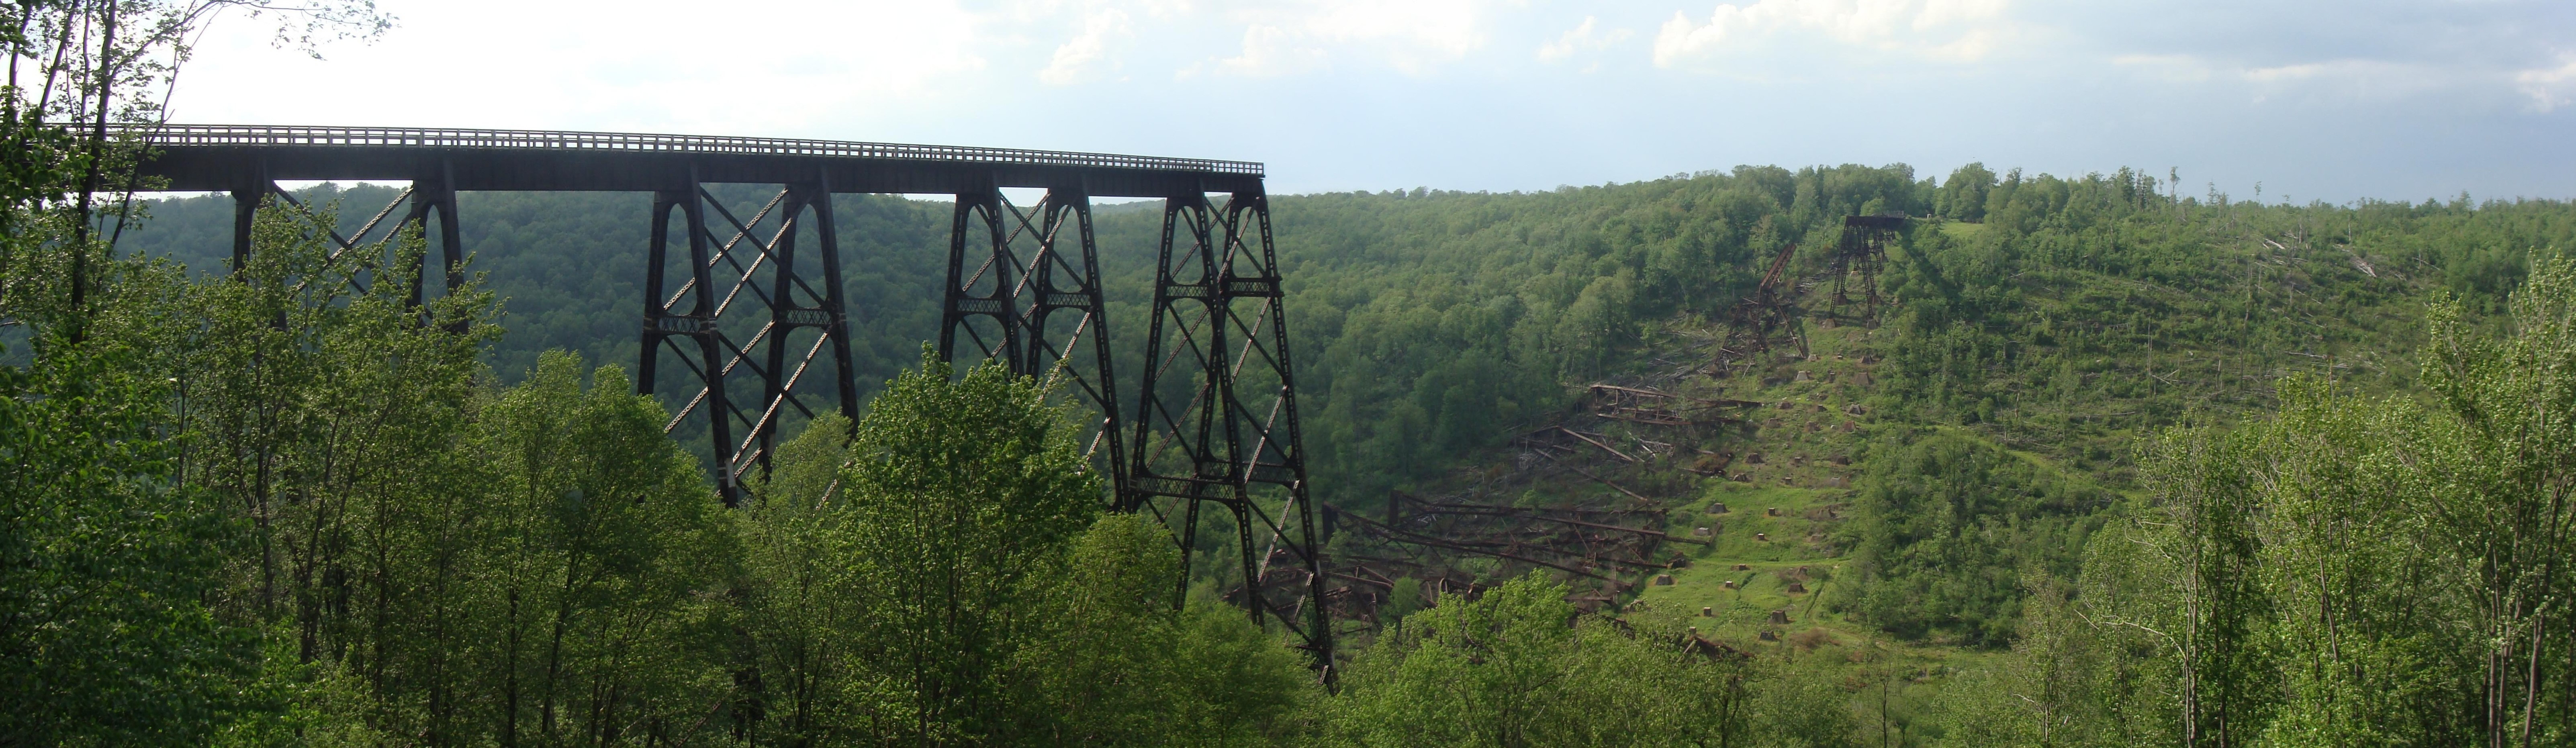 Panoramic view of the remains of the Kinzua Bridge